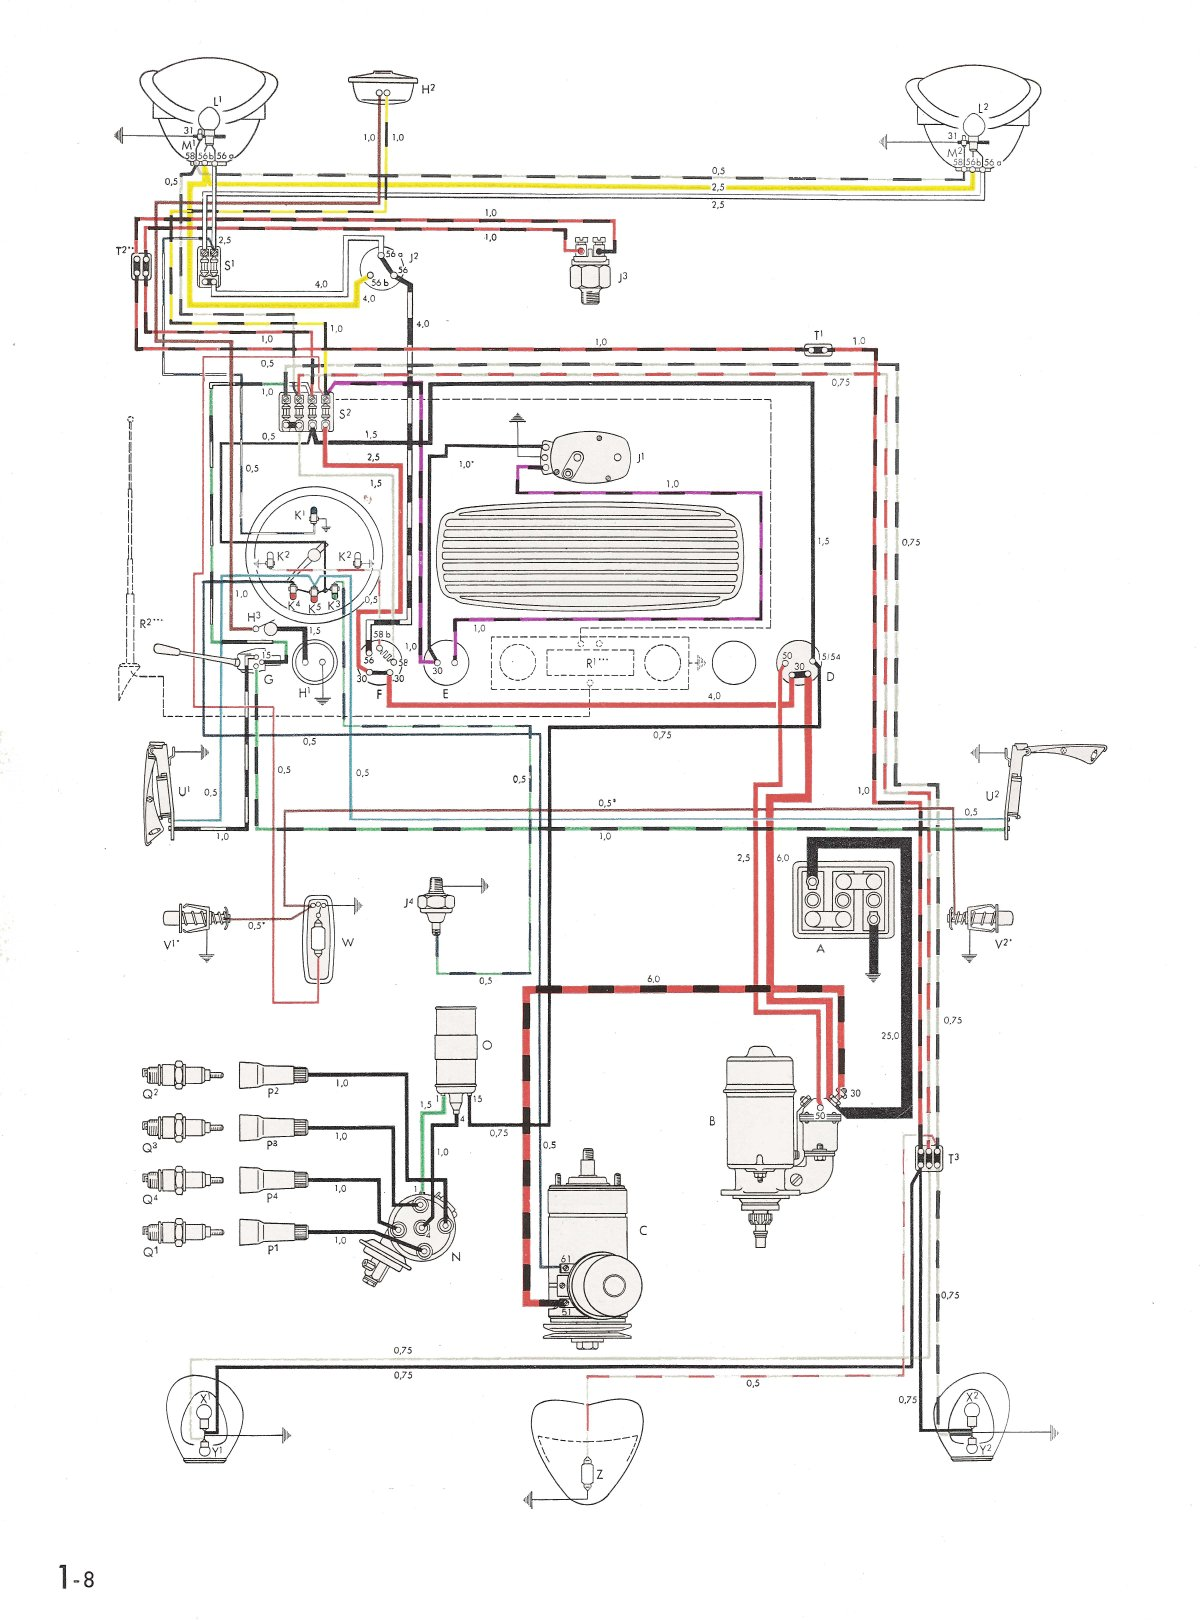 wiring diagram for 1979 vw super beetle wiring diagram database 2000 beetle wiring diagram thesamba com type 1 wiring diagrams 1963 vw bug wiring wiring diagram for 1979 vw super beetle